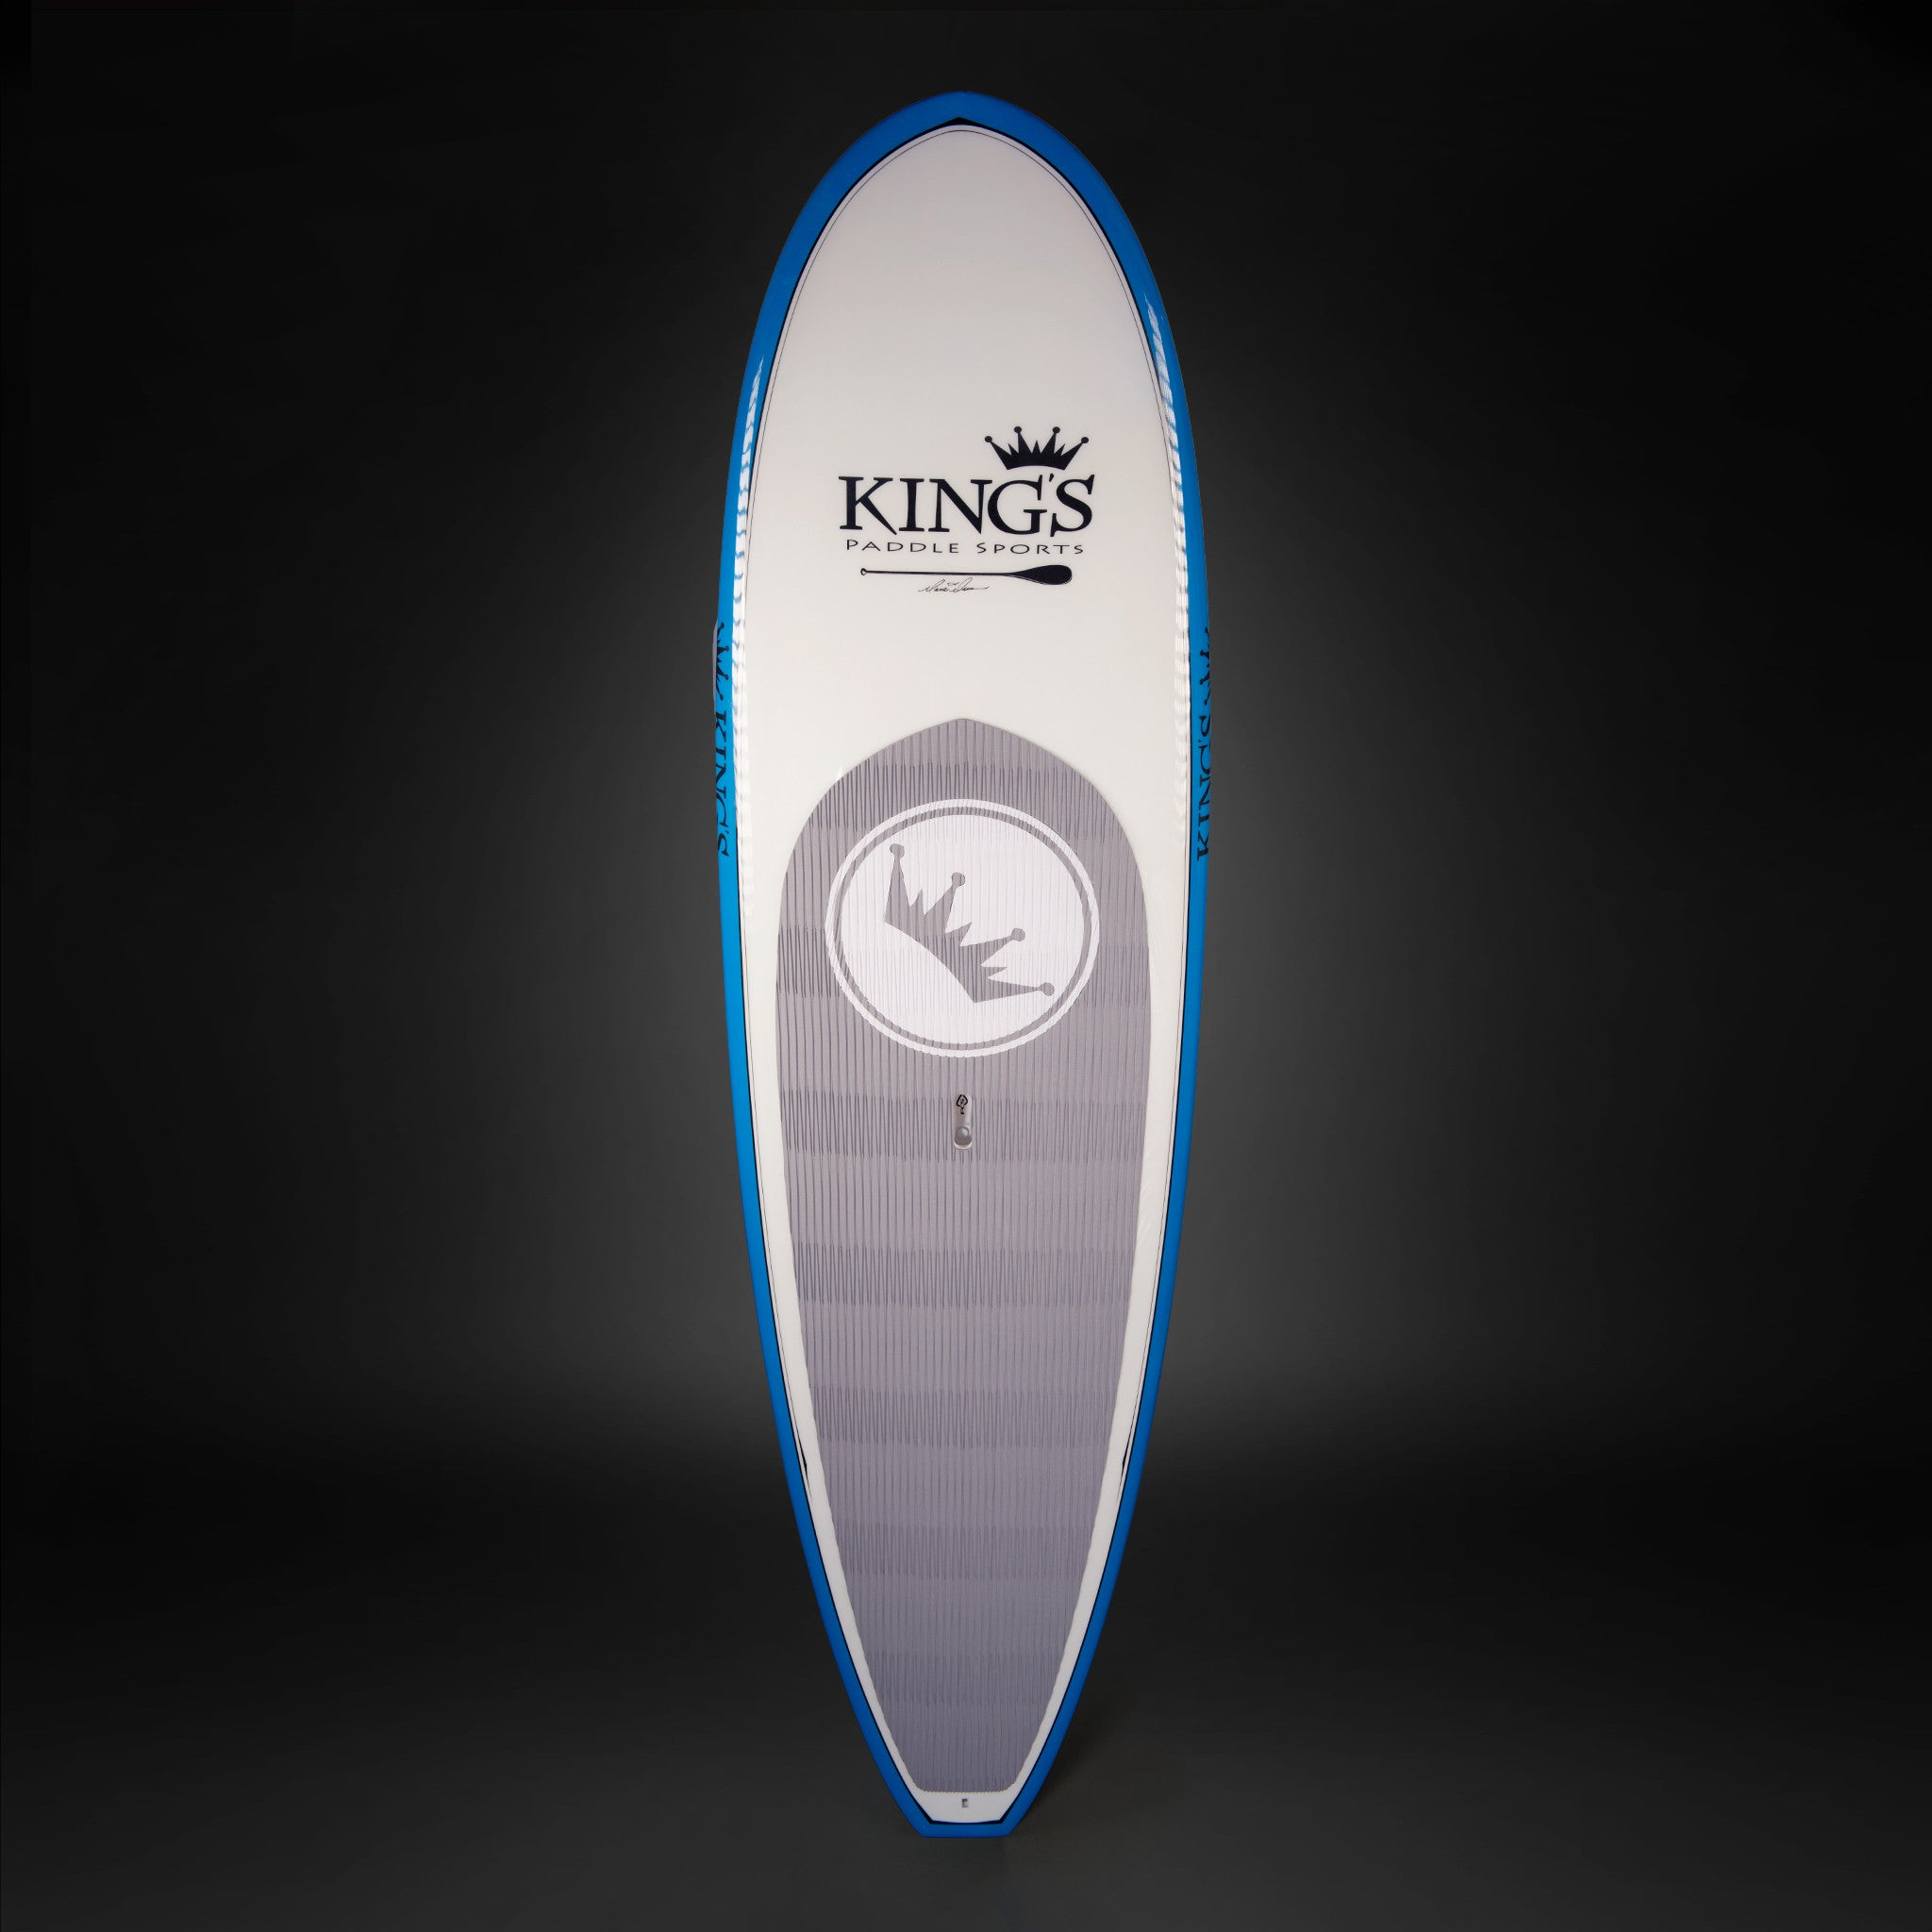 King's SS Stand Up Paddle Board